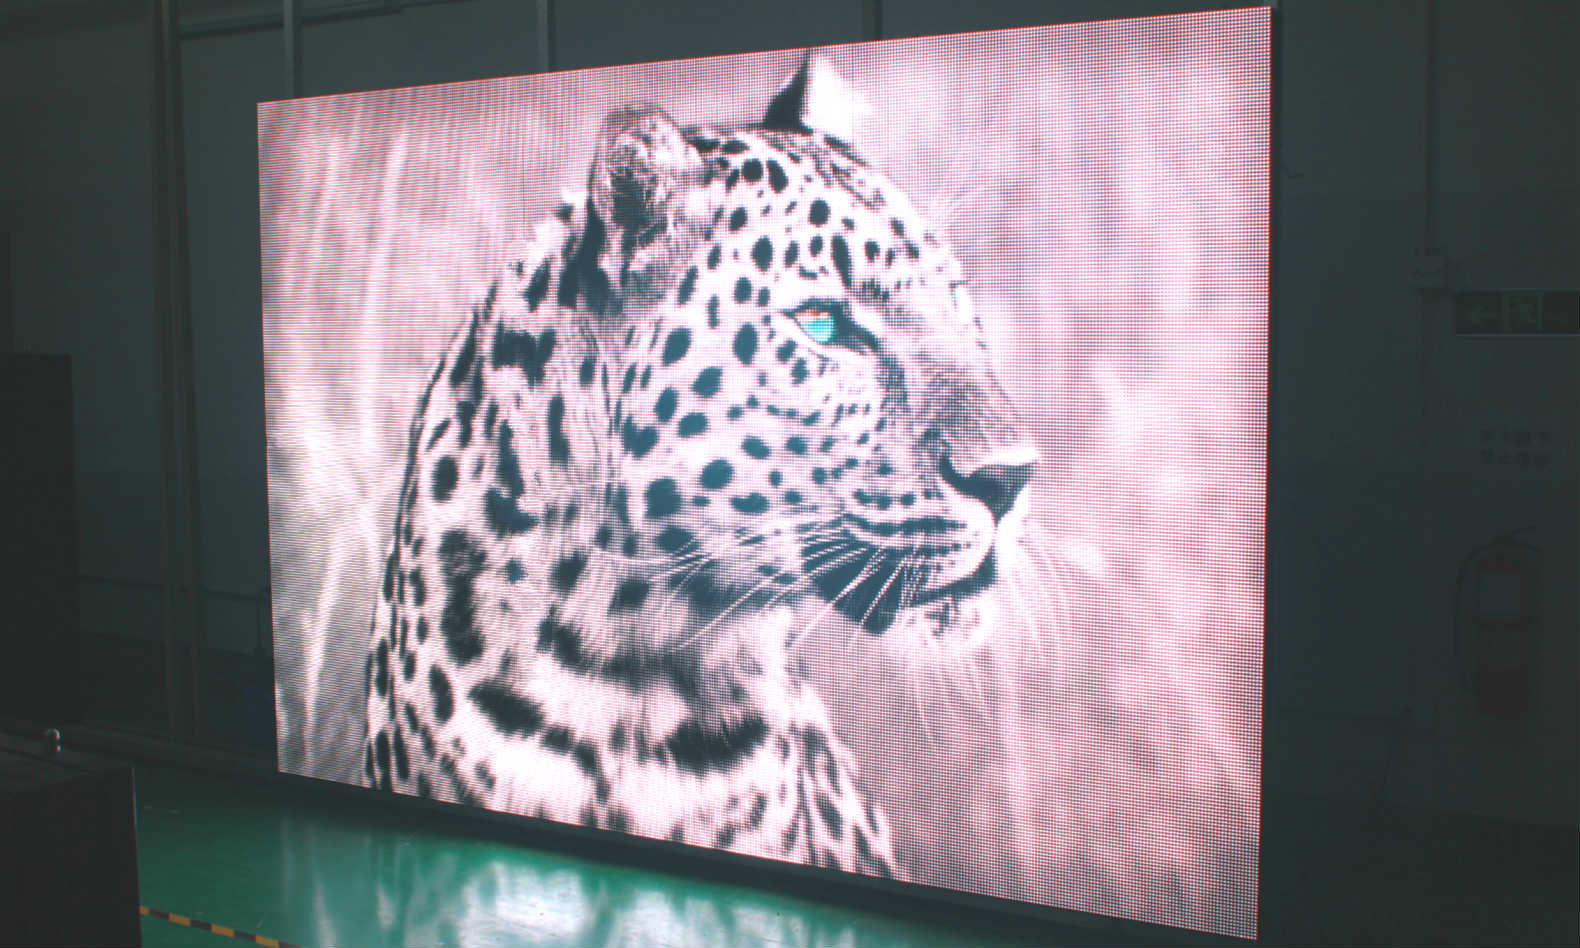 6.67mm Outdoor Rental LED Display